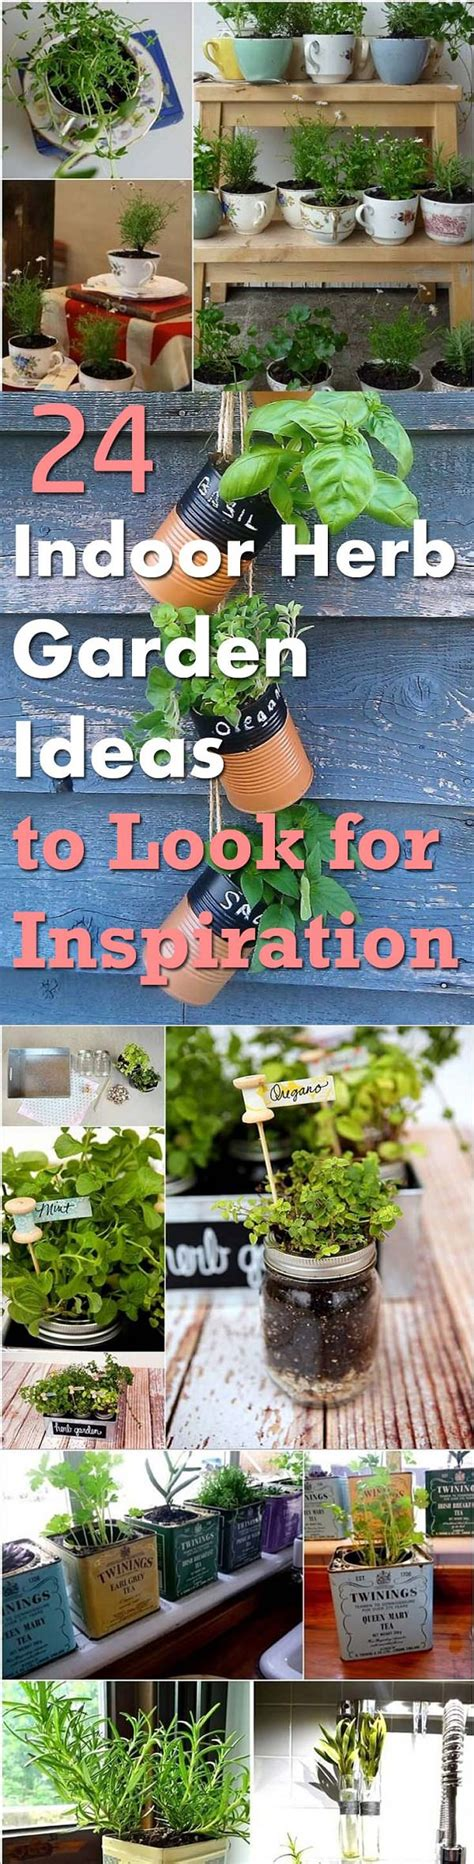 indoor herb garden ideas 24 indoor herb garden ideas to look for inspiration